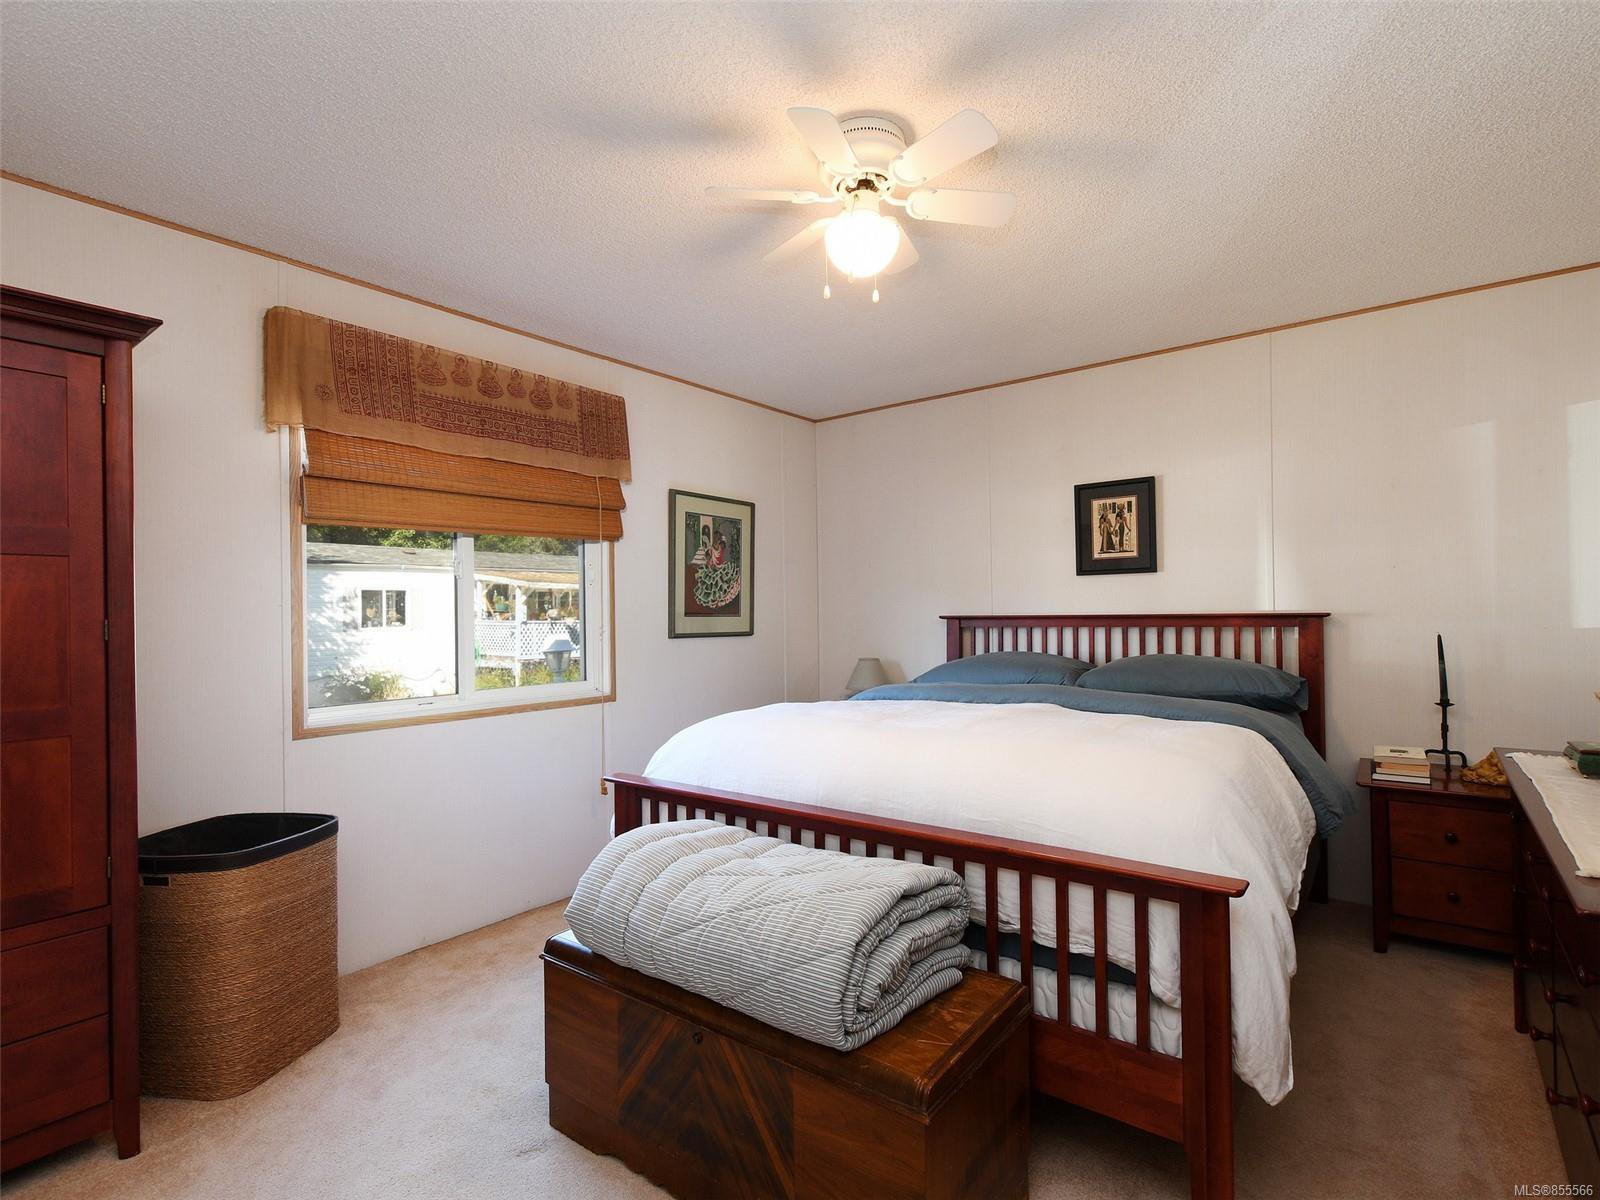 Photo 11: Photos: 28 7021 W Grant Rd in : Sk John Muir Manufactured Home for sale (Sooke)  : MLS®# 855566